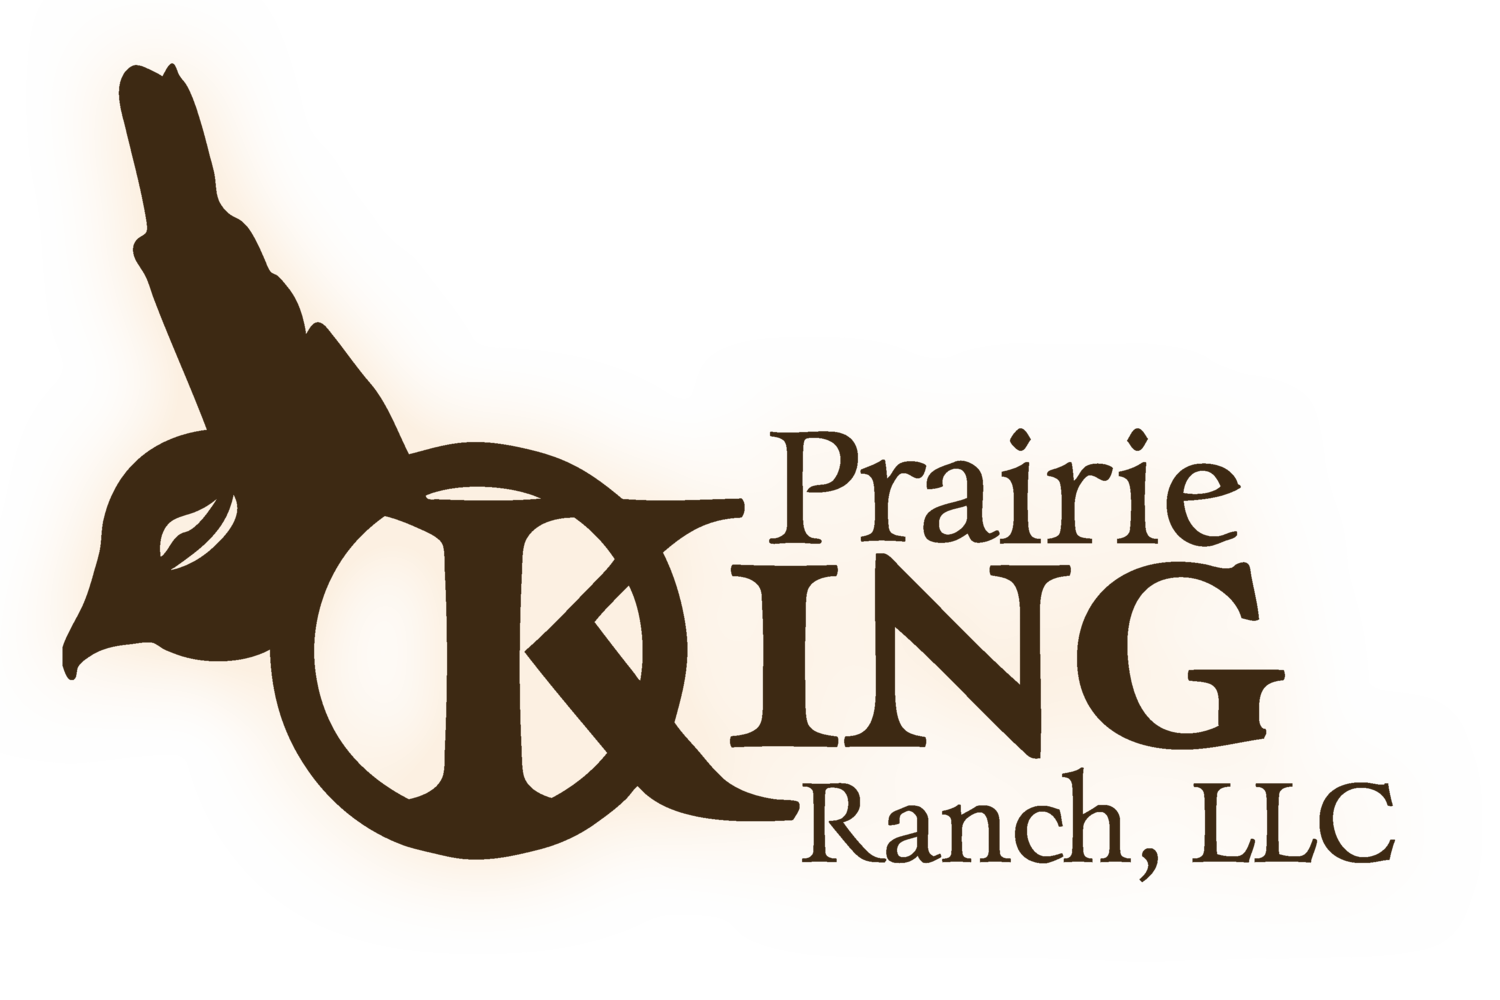 Prairie King Ranch